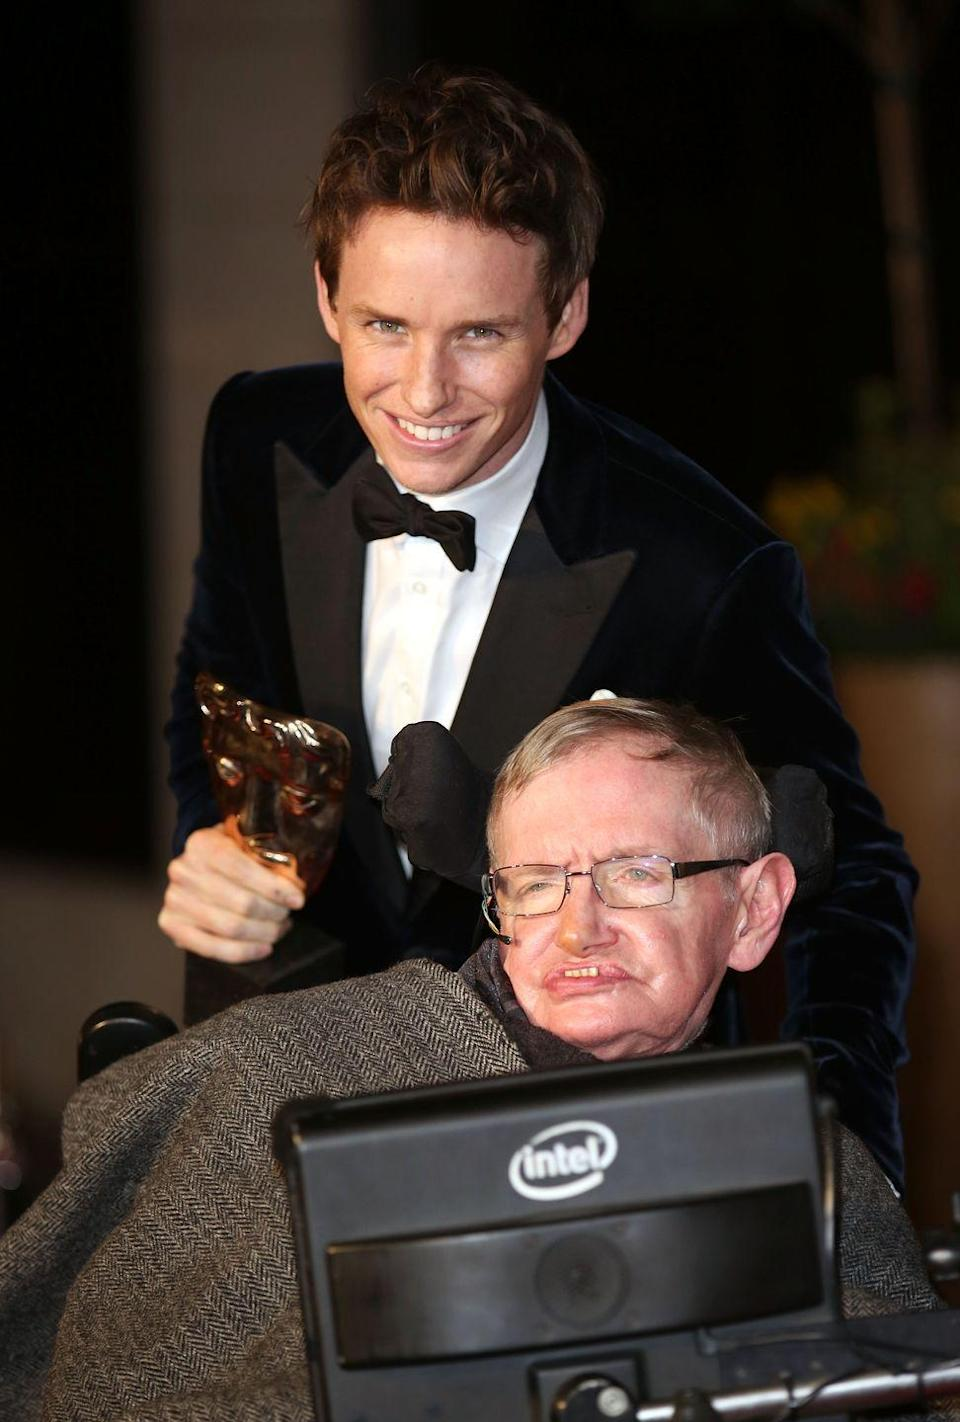 <p>Eddie Redmayne portrayed theoretical physicist Stephen Hawking in the 2014 film <em>The Theory of Everything. </em></p>